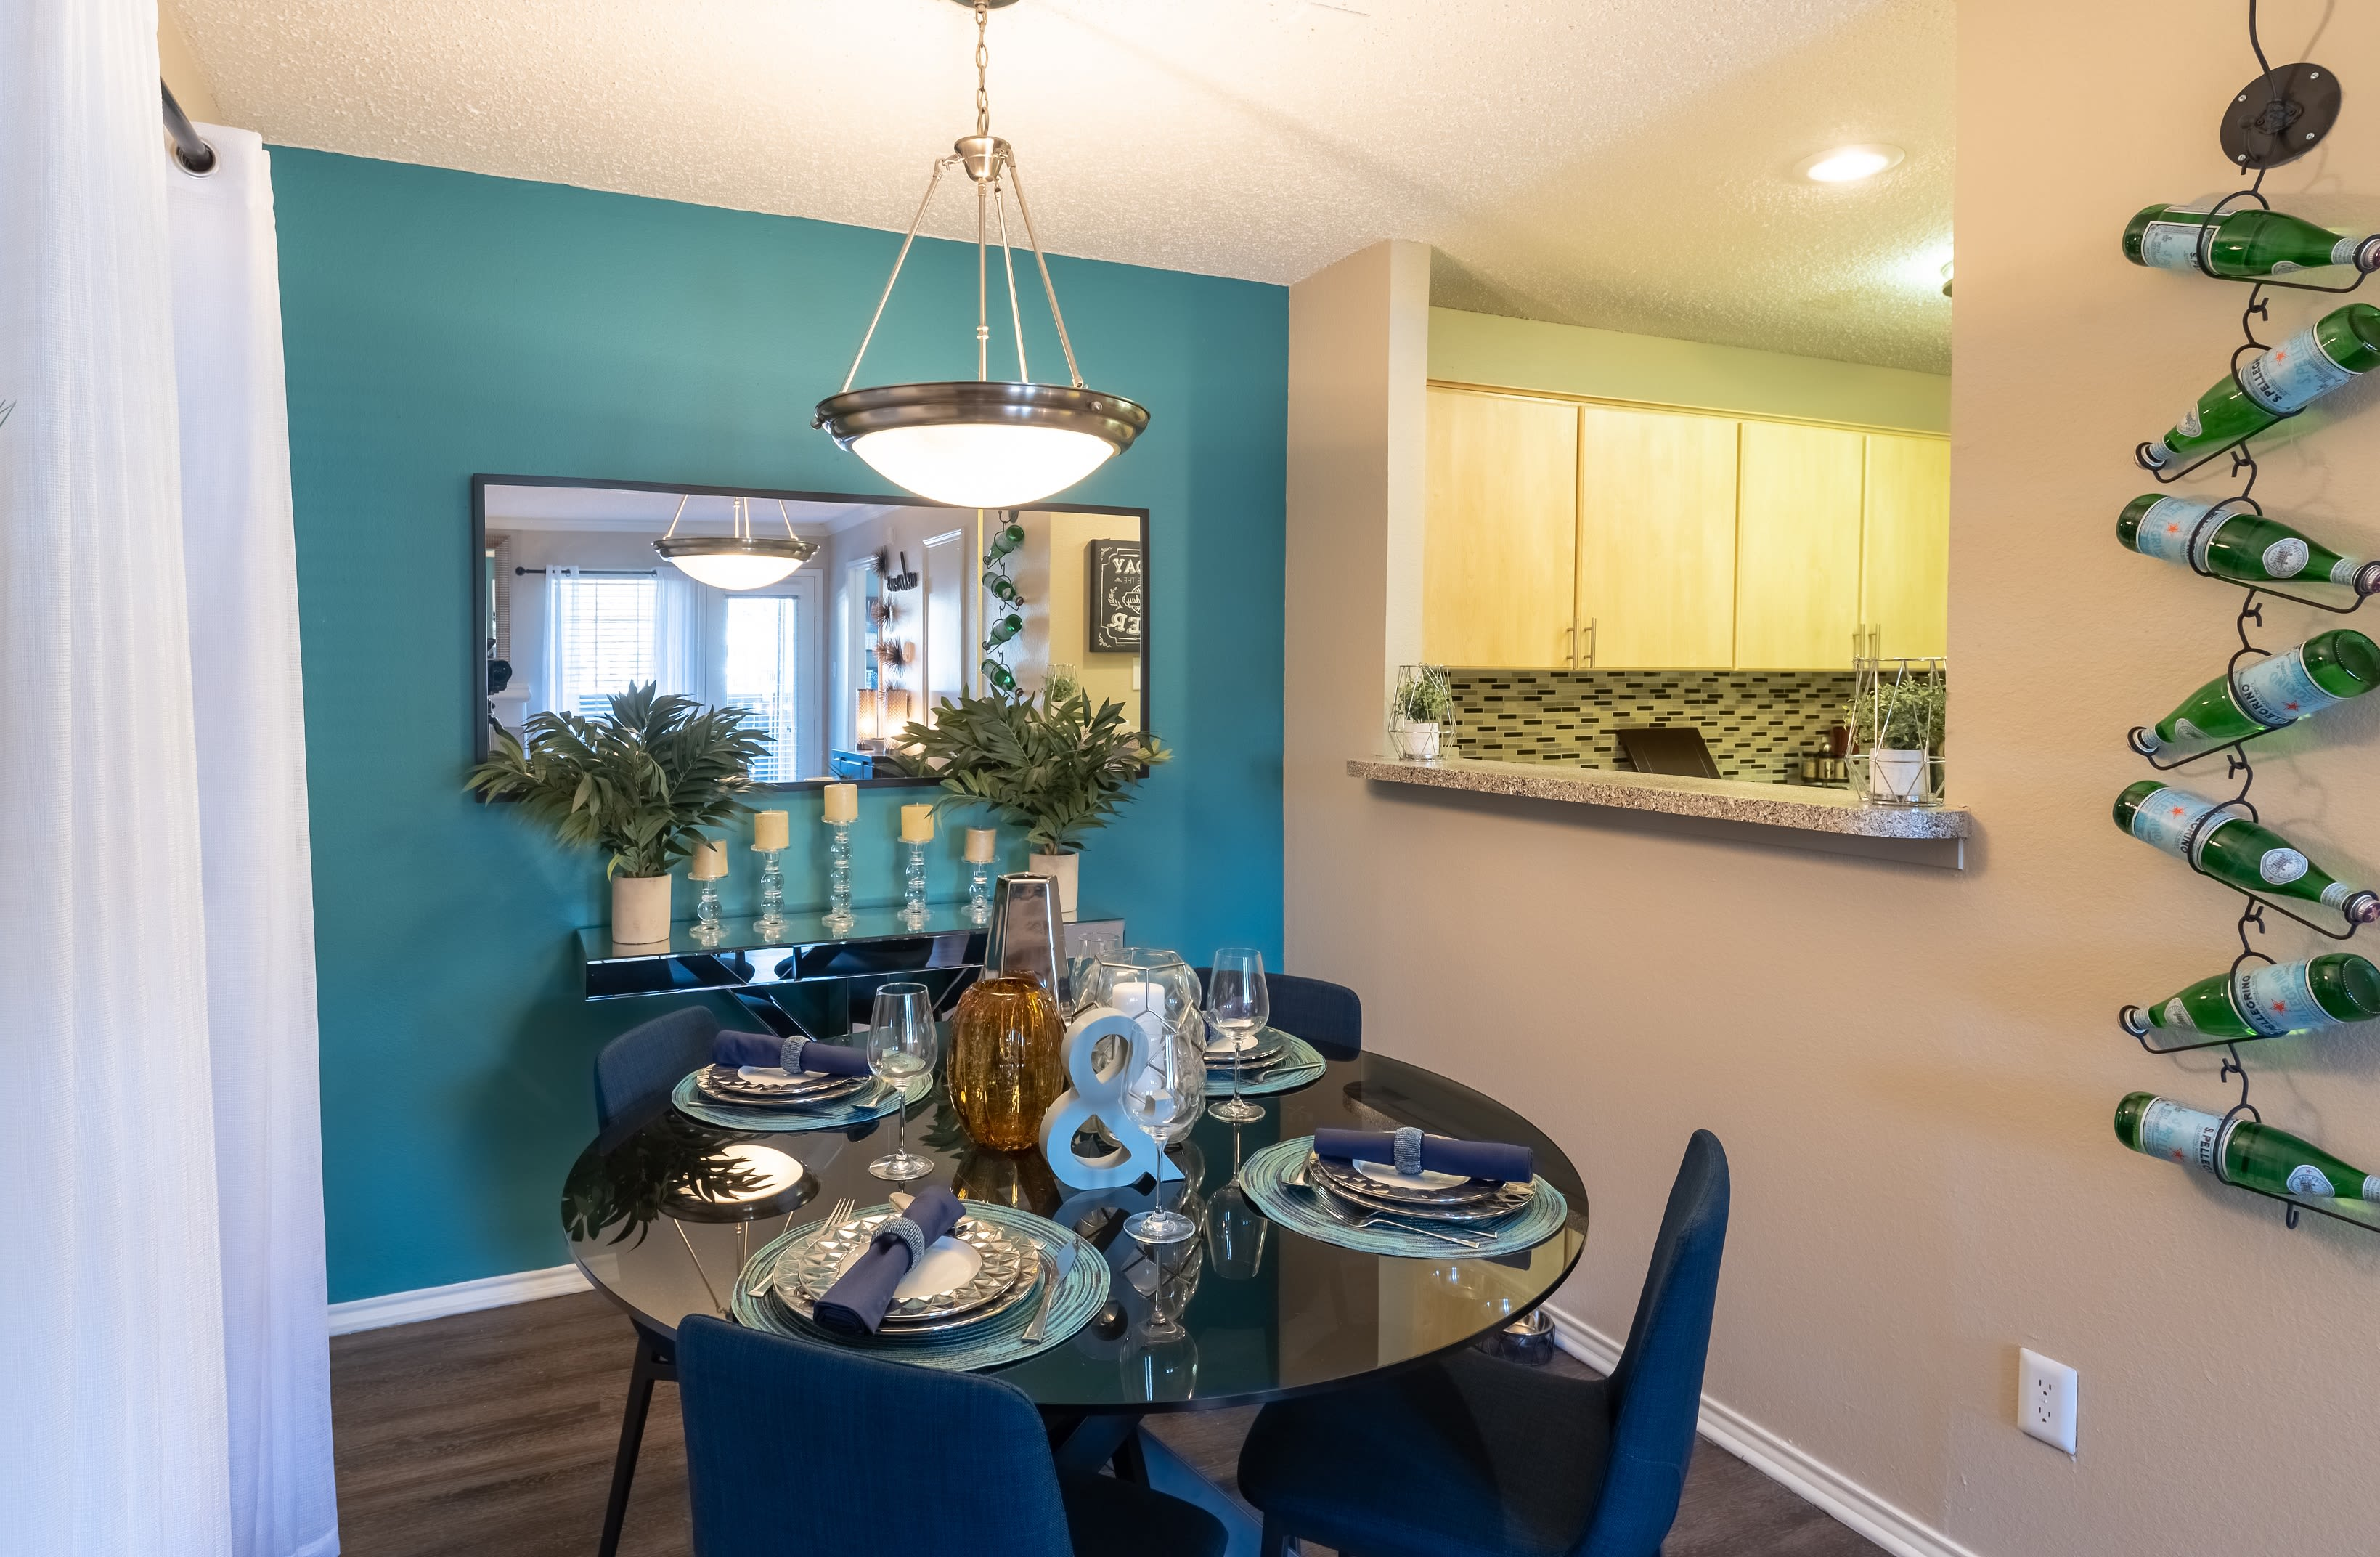 Enjoy the spacious resident cluhouse at Village Green of Bear Creek in Euless, Texas